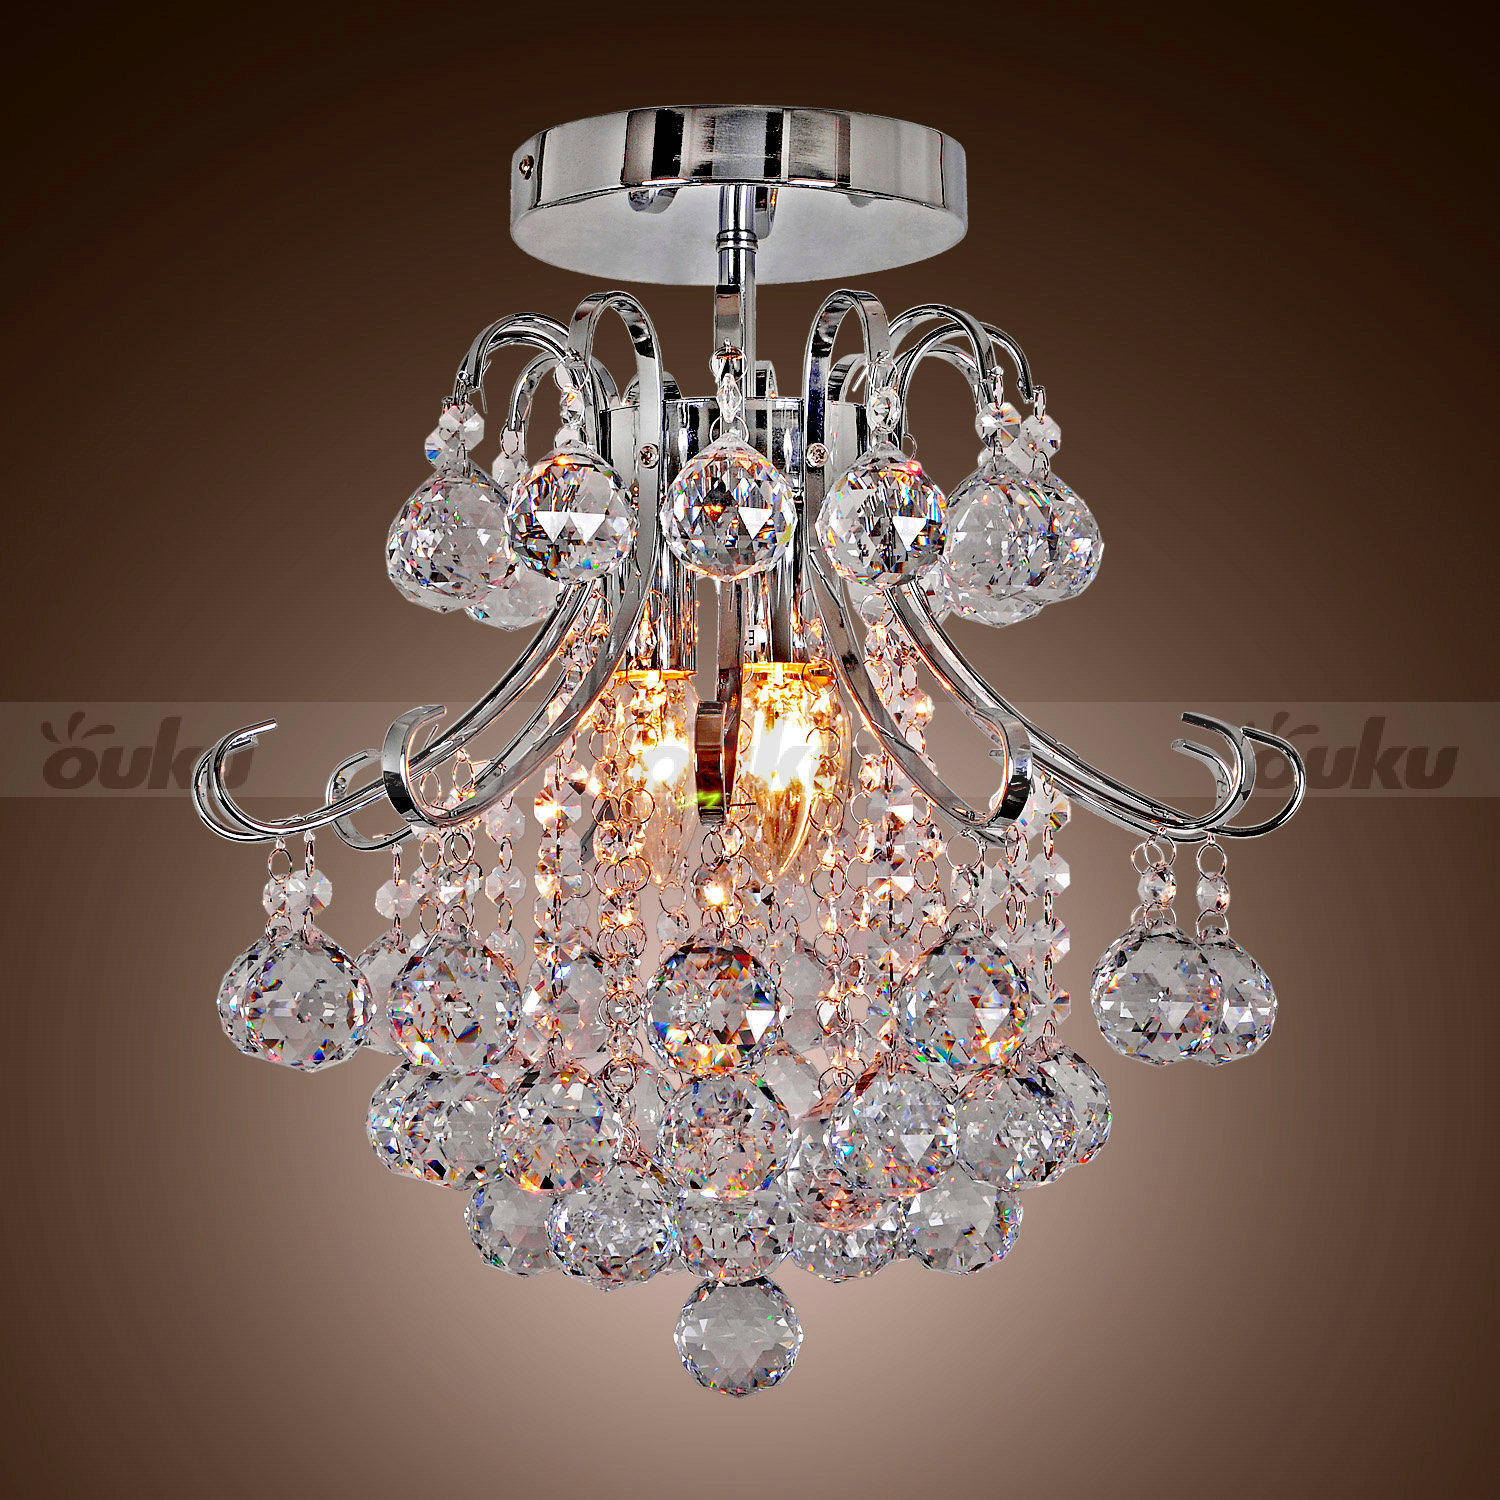 40w Led Ceiling Light Fixture Lamp Flush Mount Room: 40W Modern Crystal Chandeliers Flush Mount Lighting Living